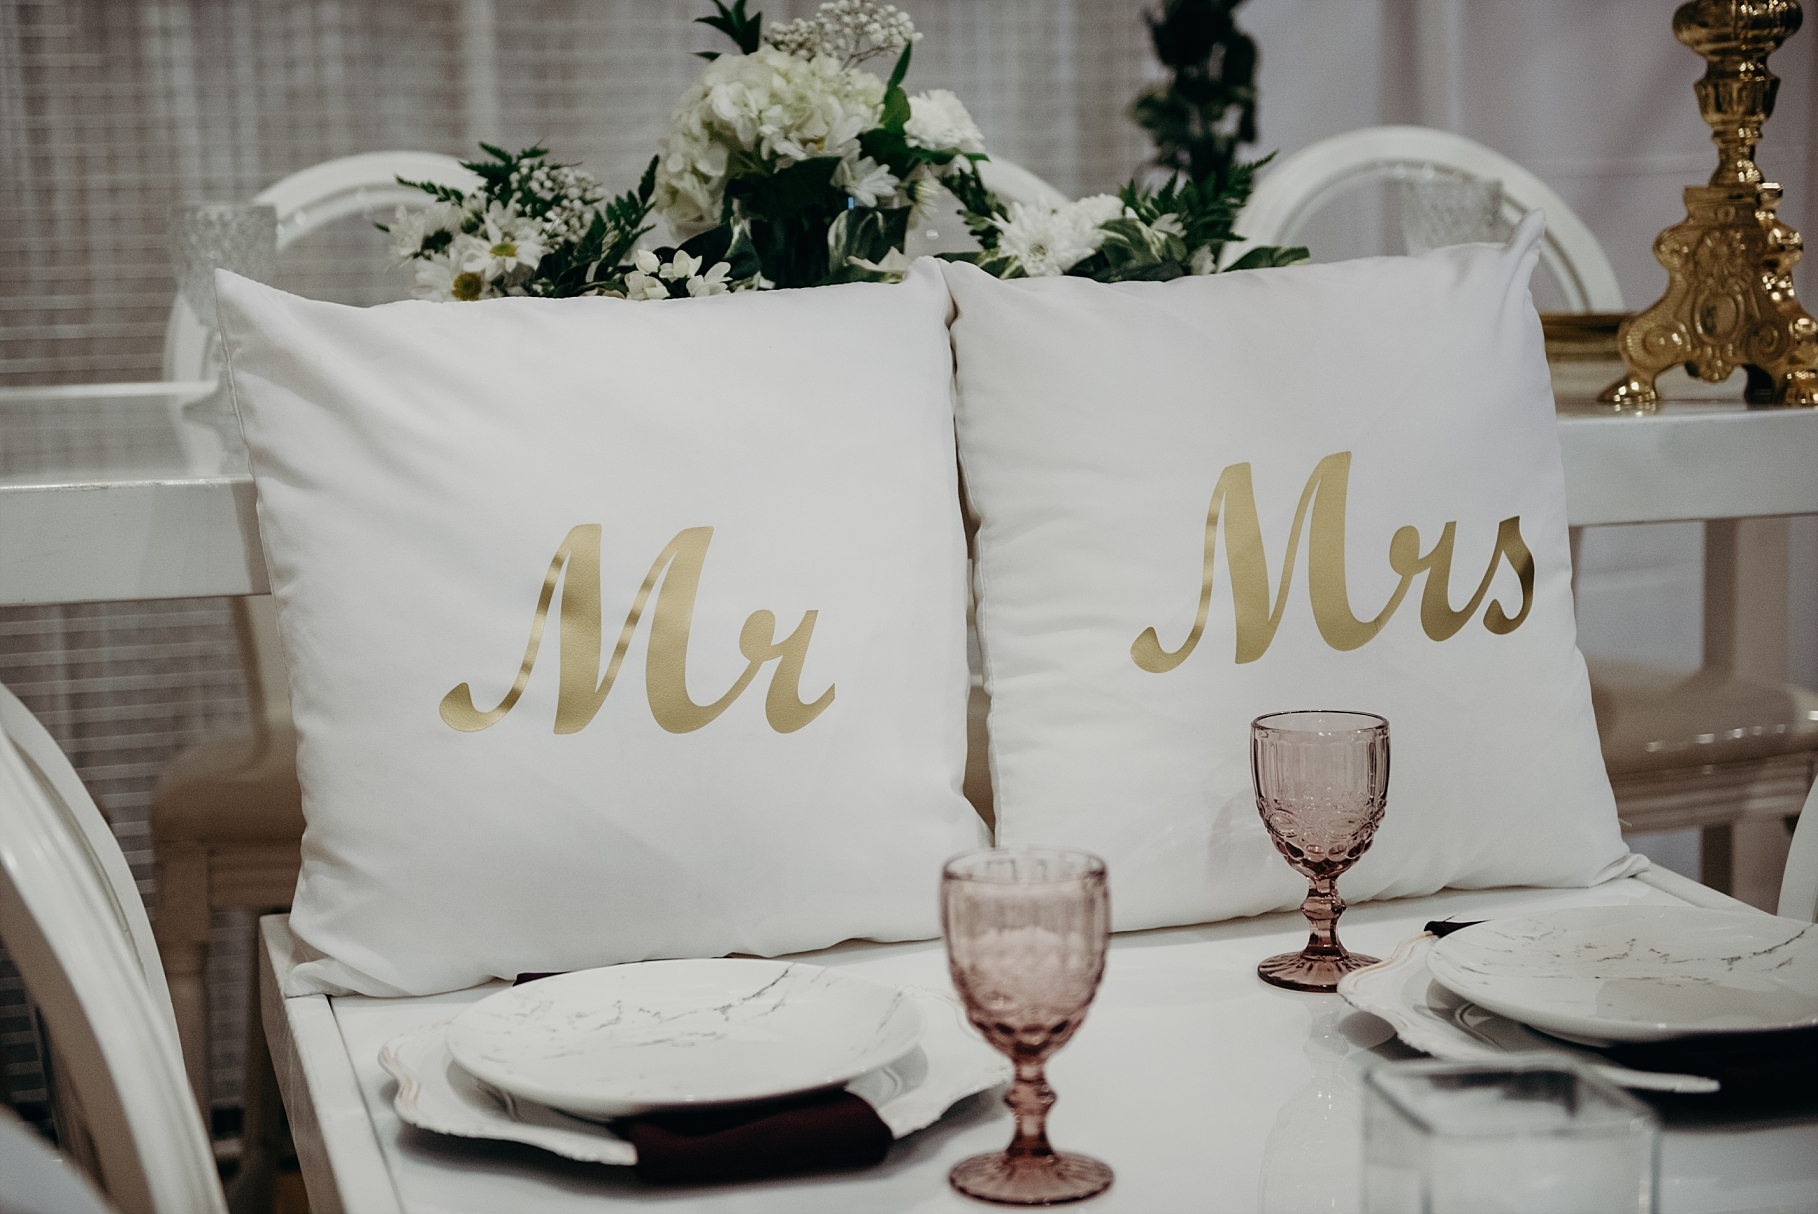 Mocha Tree Studios Ottawa Wedding and Engagement Photographer and Videographer Dark Moody Intimate Authentic Modern Romantic Cinematic Best Candid Wedding Palace Bridal Show 6